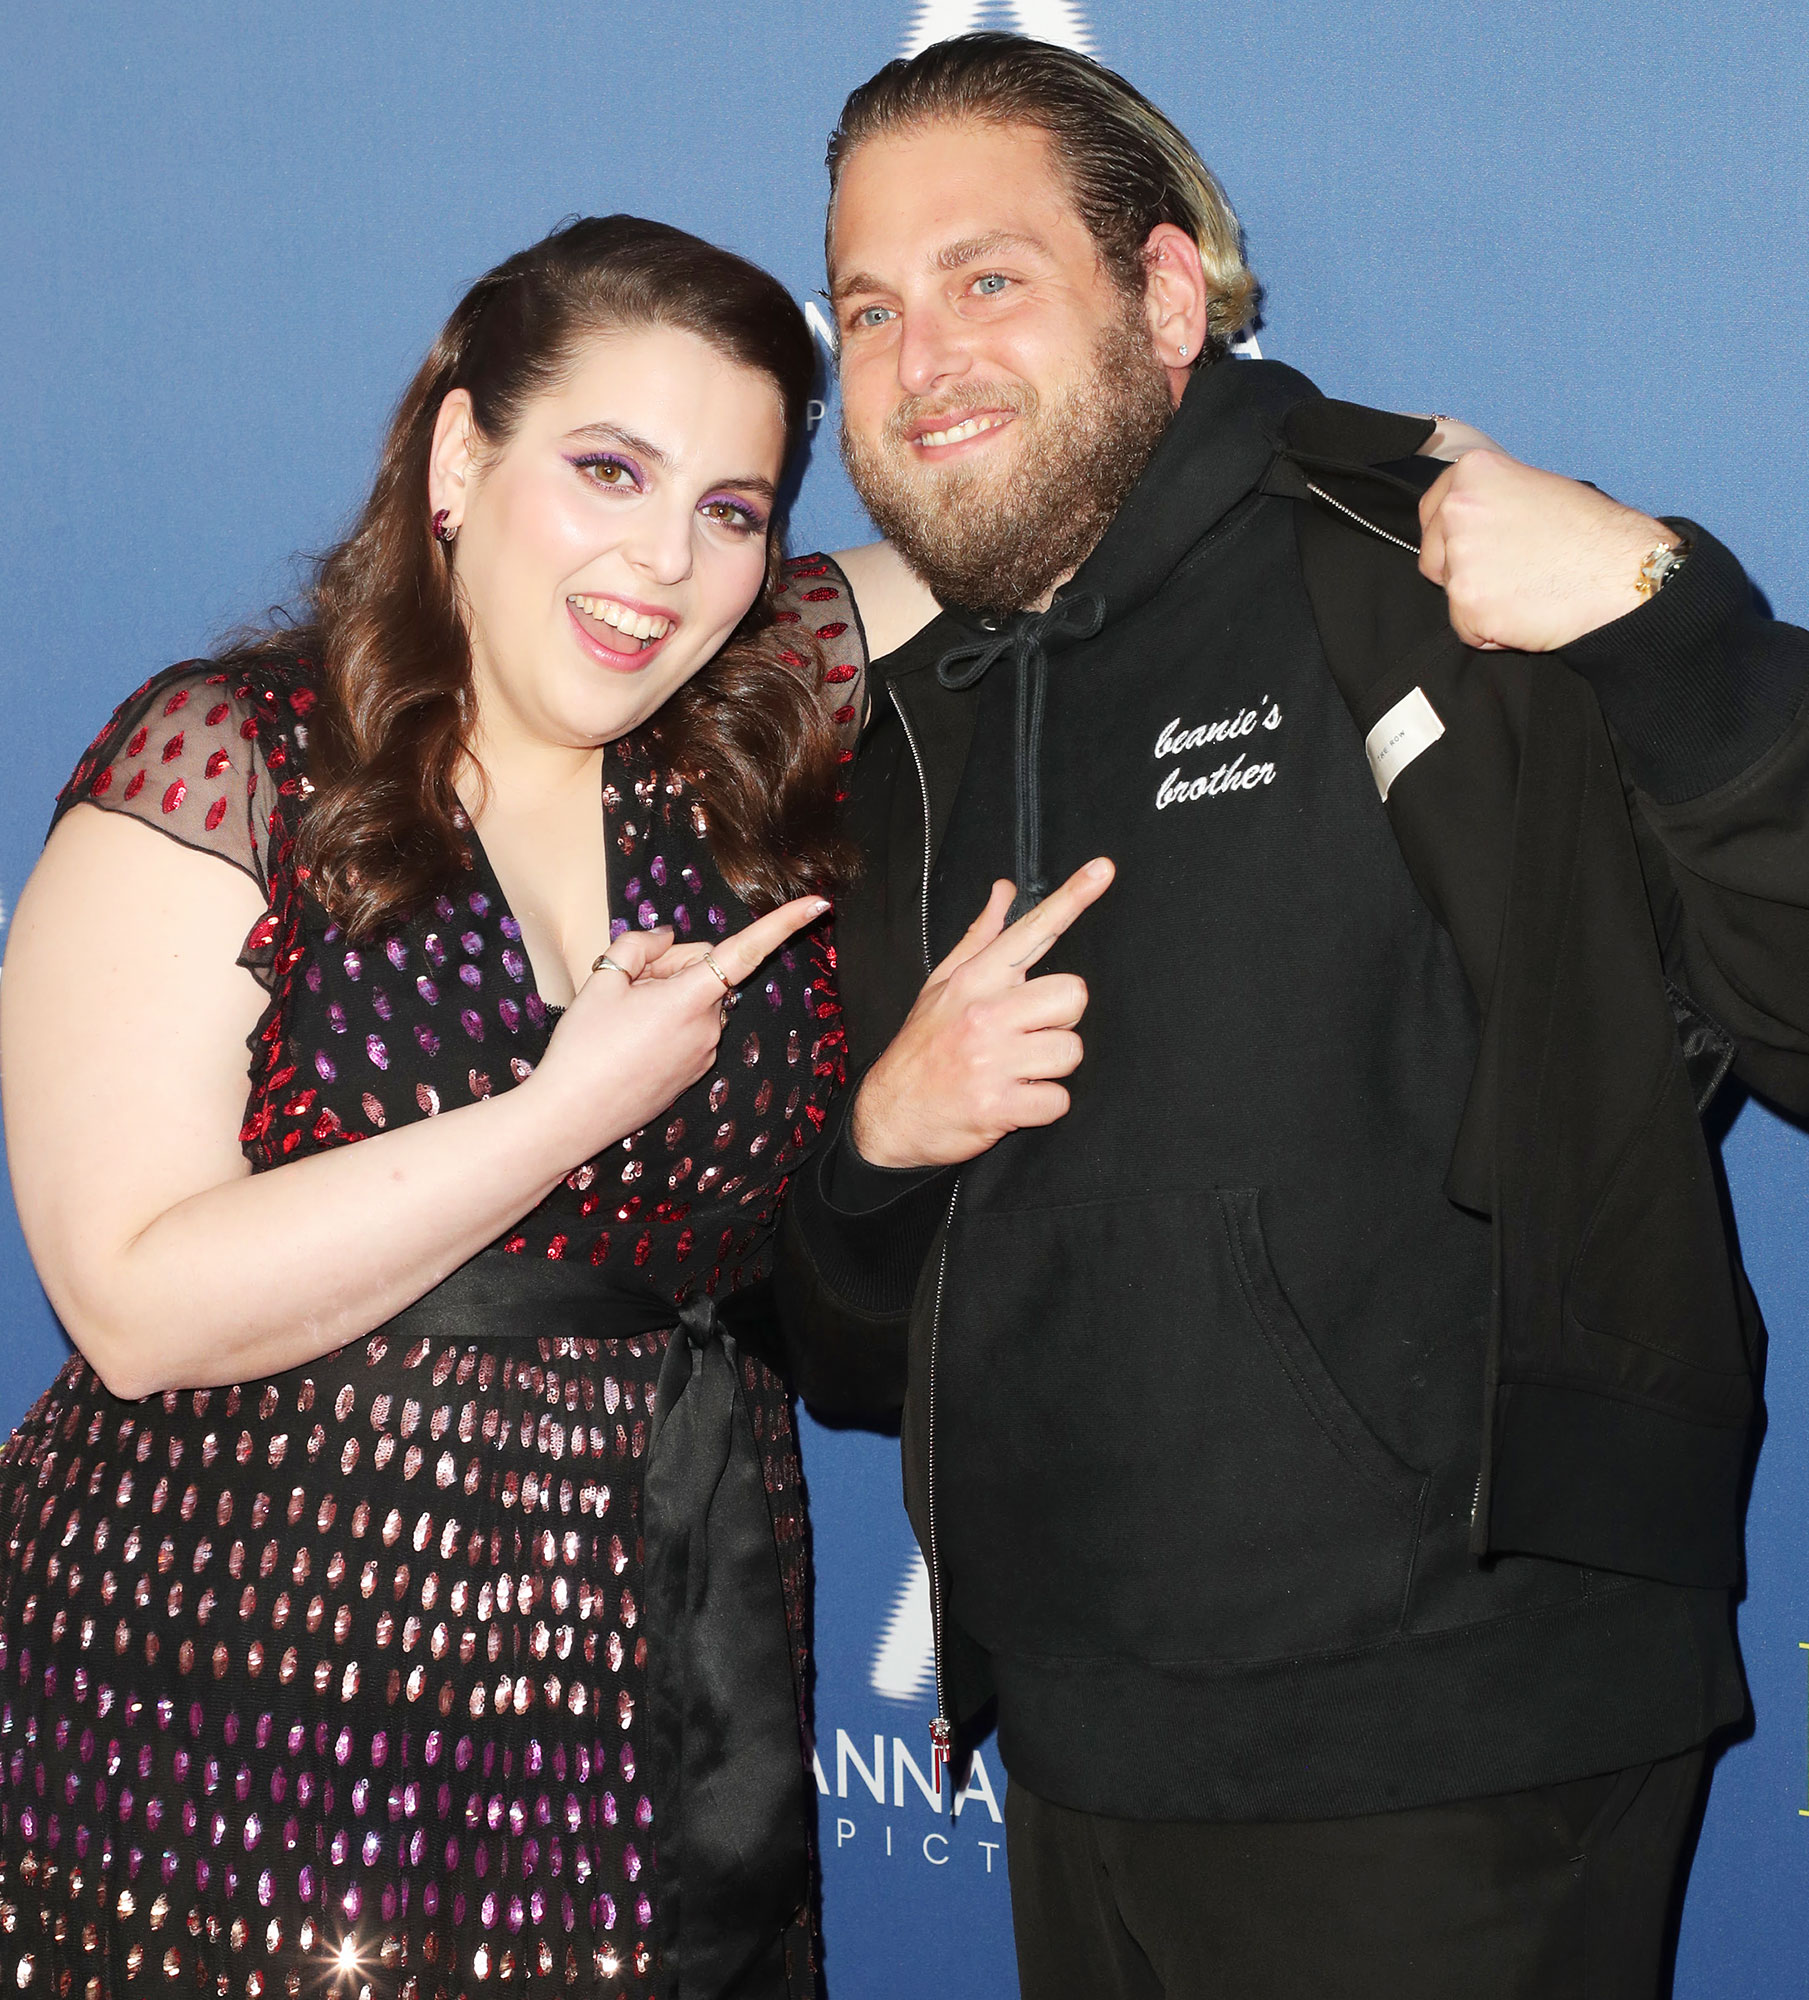 Beanie Feldstein and Jonah Hill at the Booksmart Premiere Beanie Feldstein Gushes Over Jonah Hill's Engagement Before Golden Globes 2020